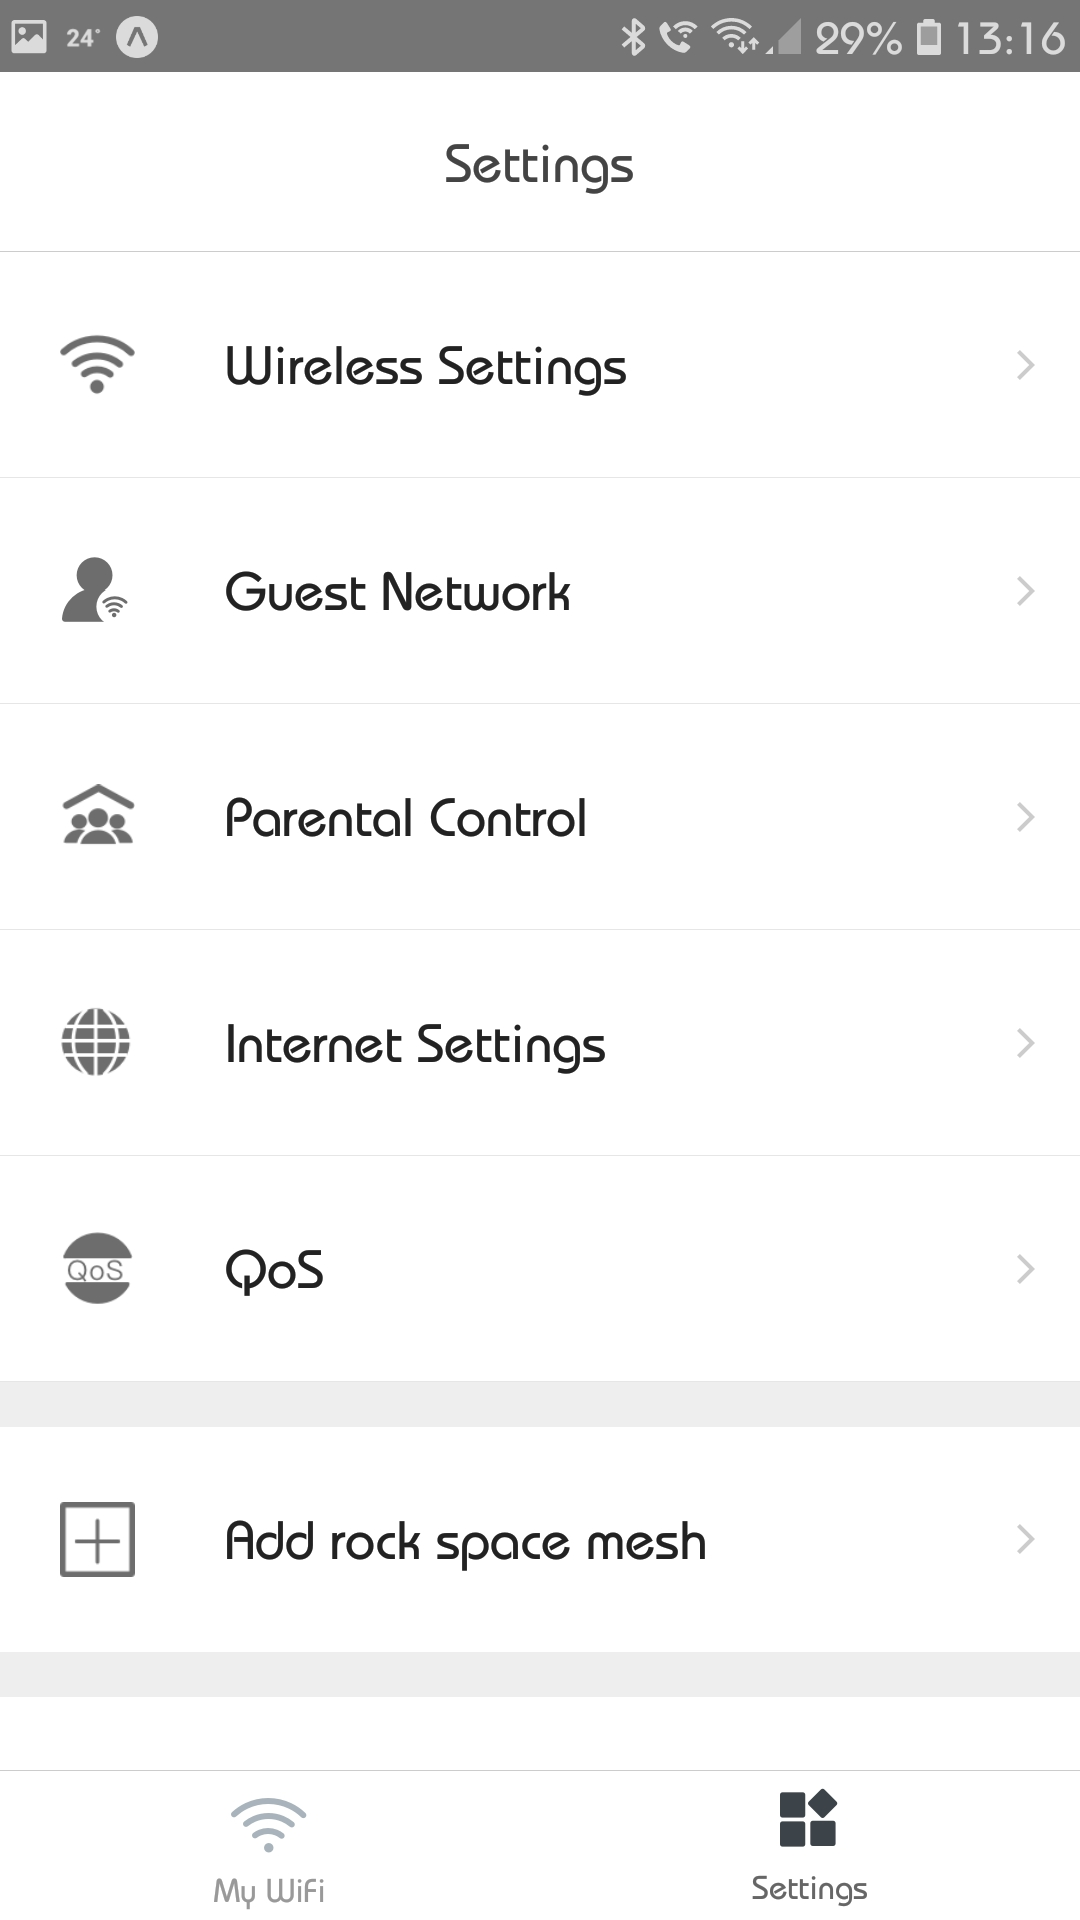 rock-space-mesh-wi-fi-app-config-eileen-brown-zdnet.png